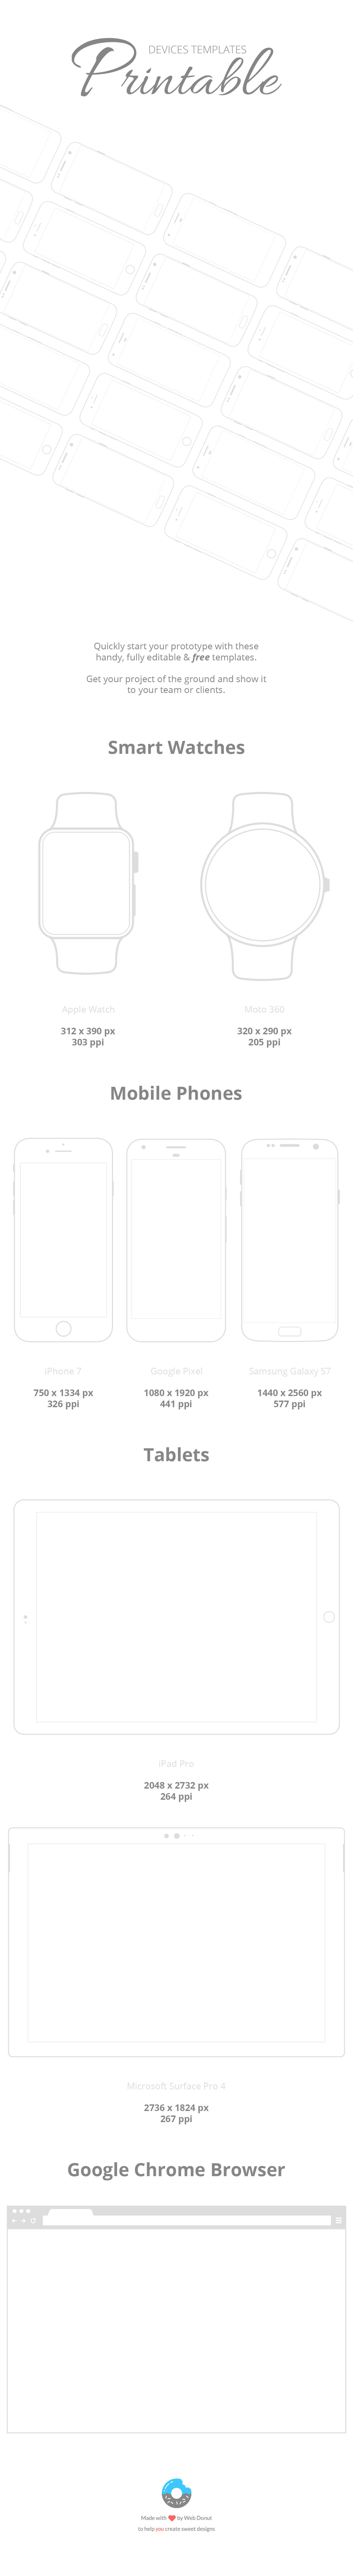 Printable Devices Templates